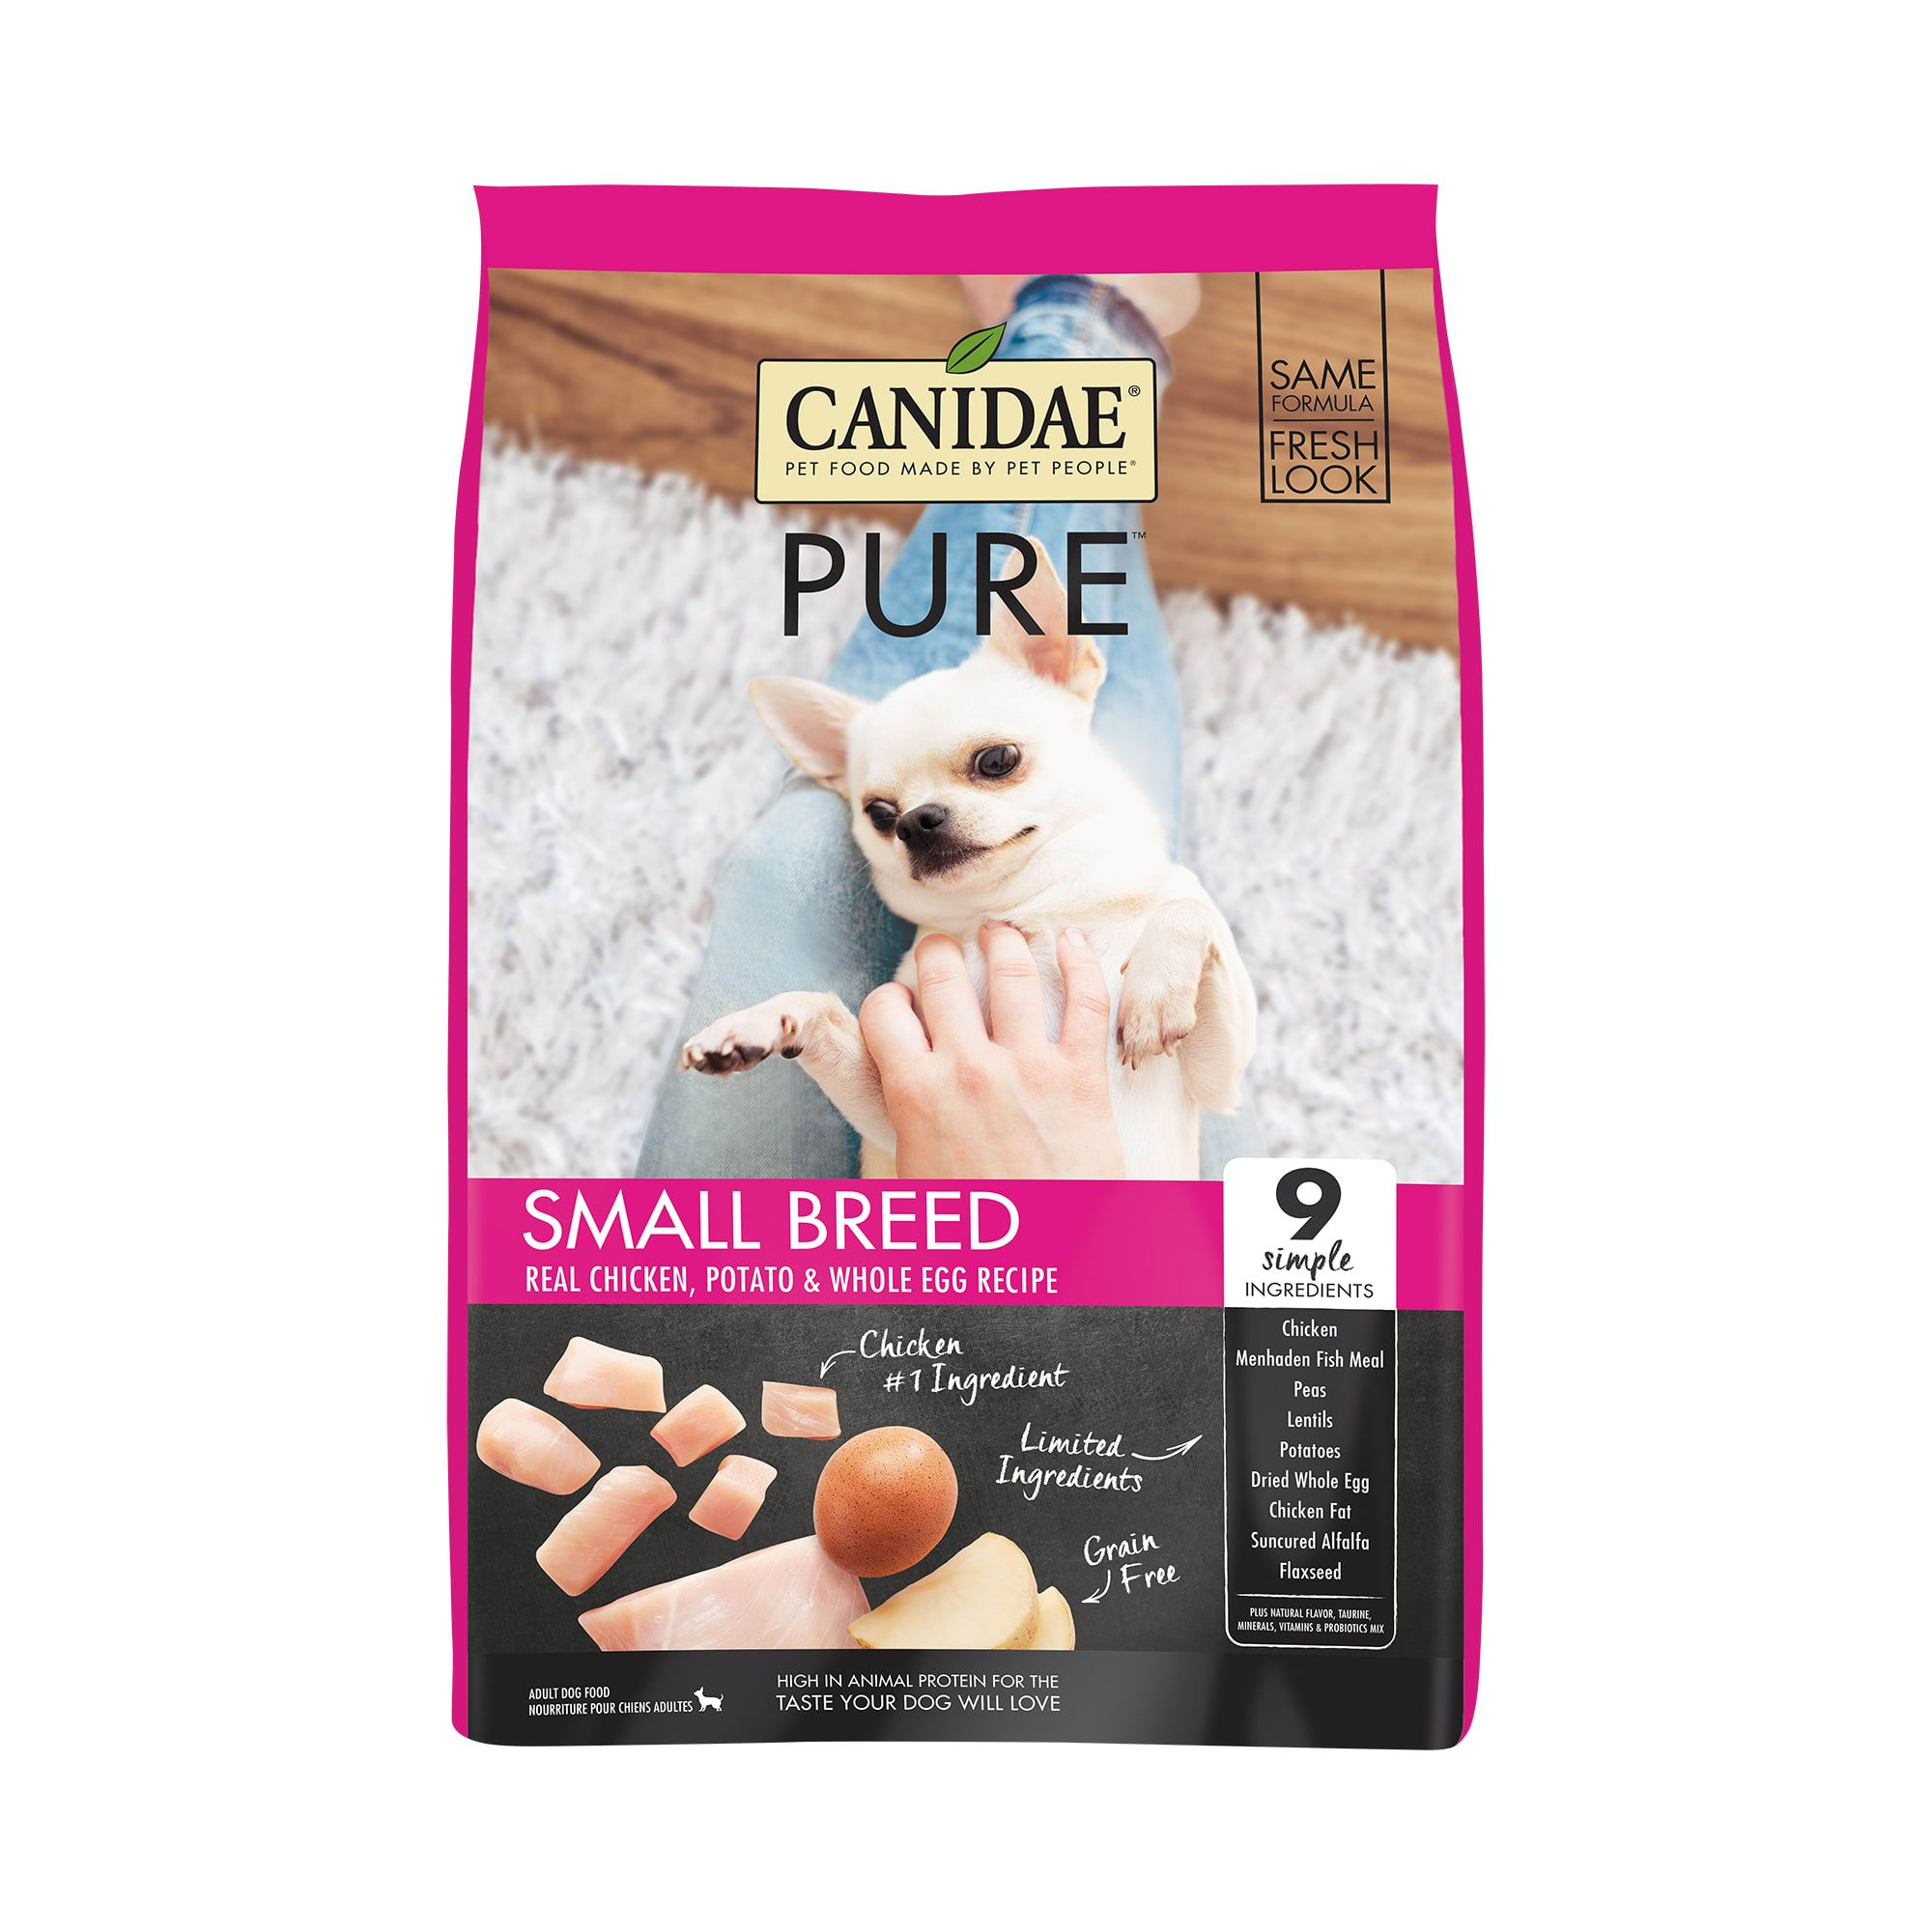 Canidae Pure Grain Free Limited Ingredient Small Breed Real